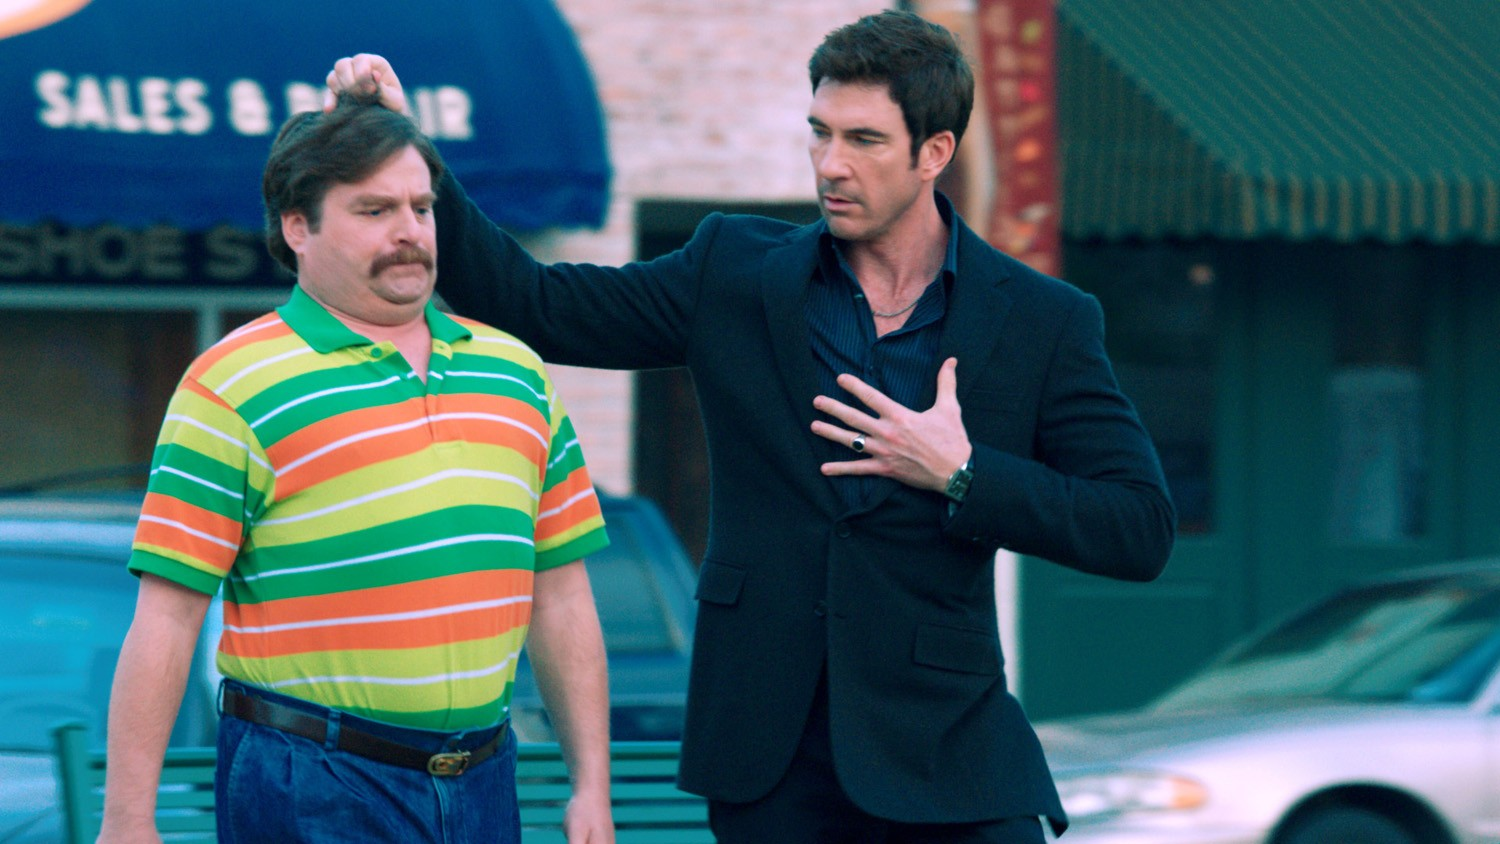 Dylan McDermott,Zach Galifianakis